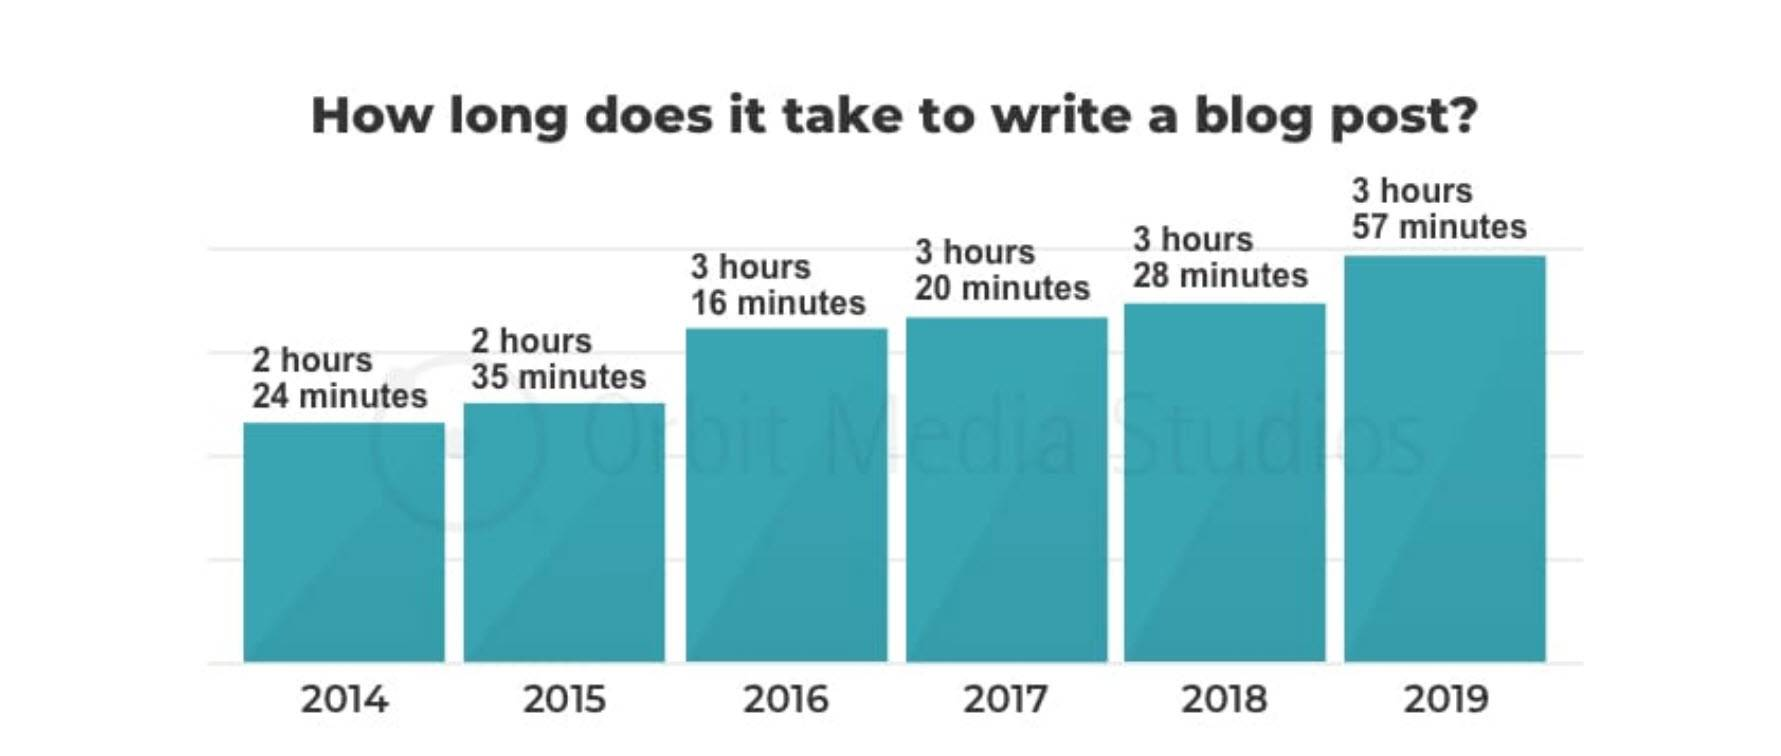 How long to write a blog post chart